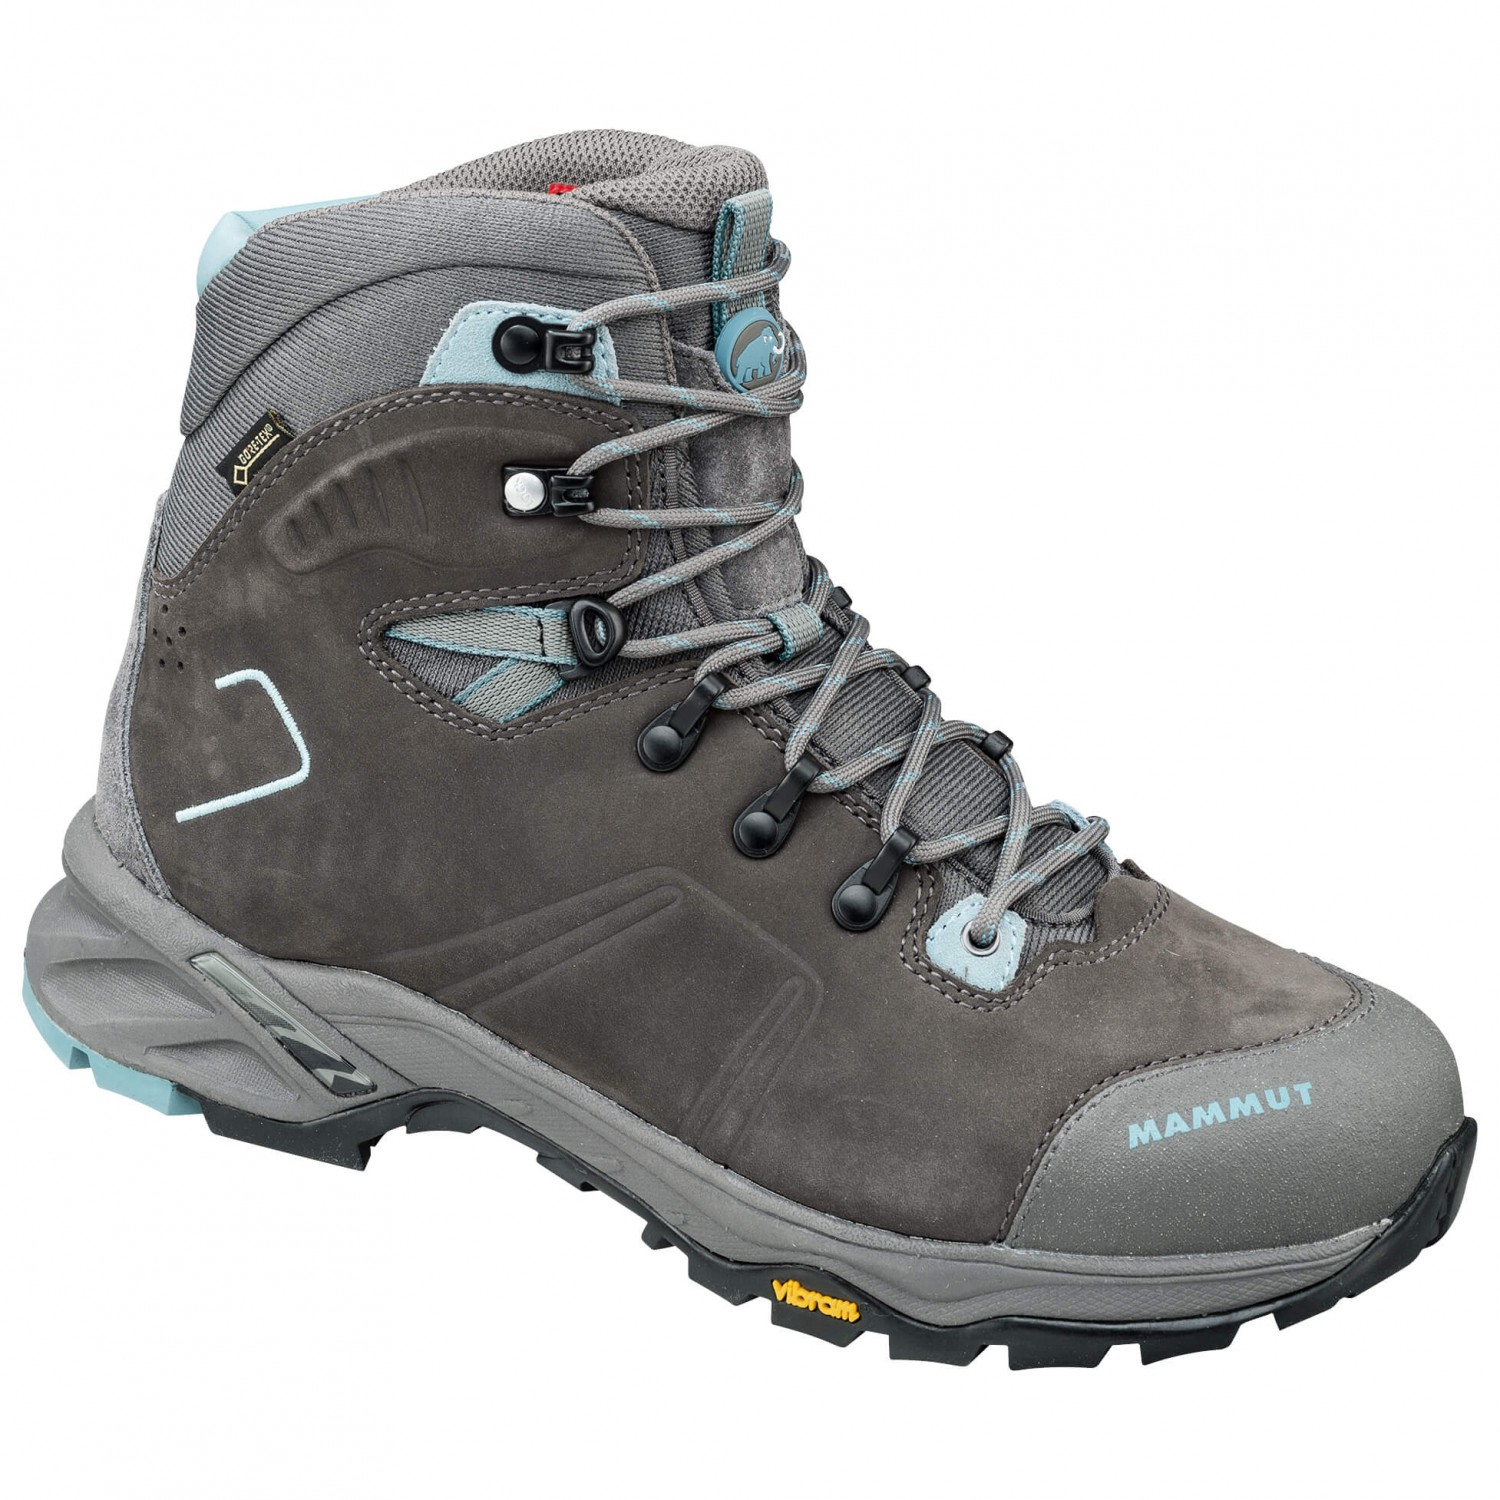 Mammut - Nova Tour High GTX Women - Wanderschuhe Bark / Air